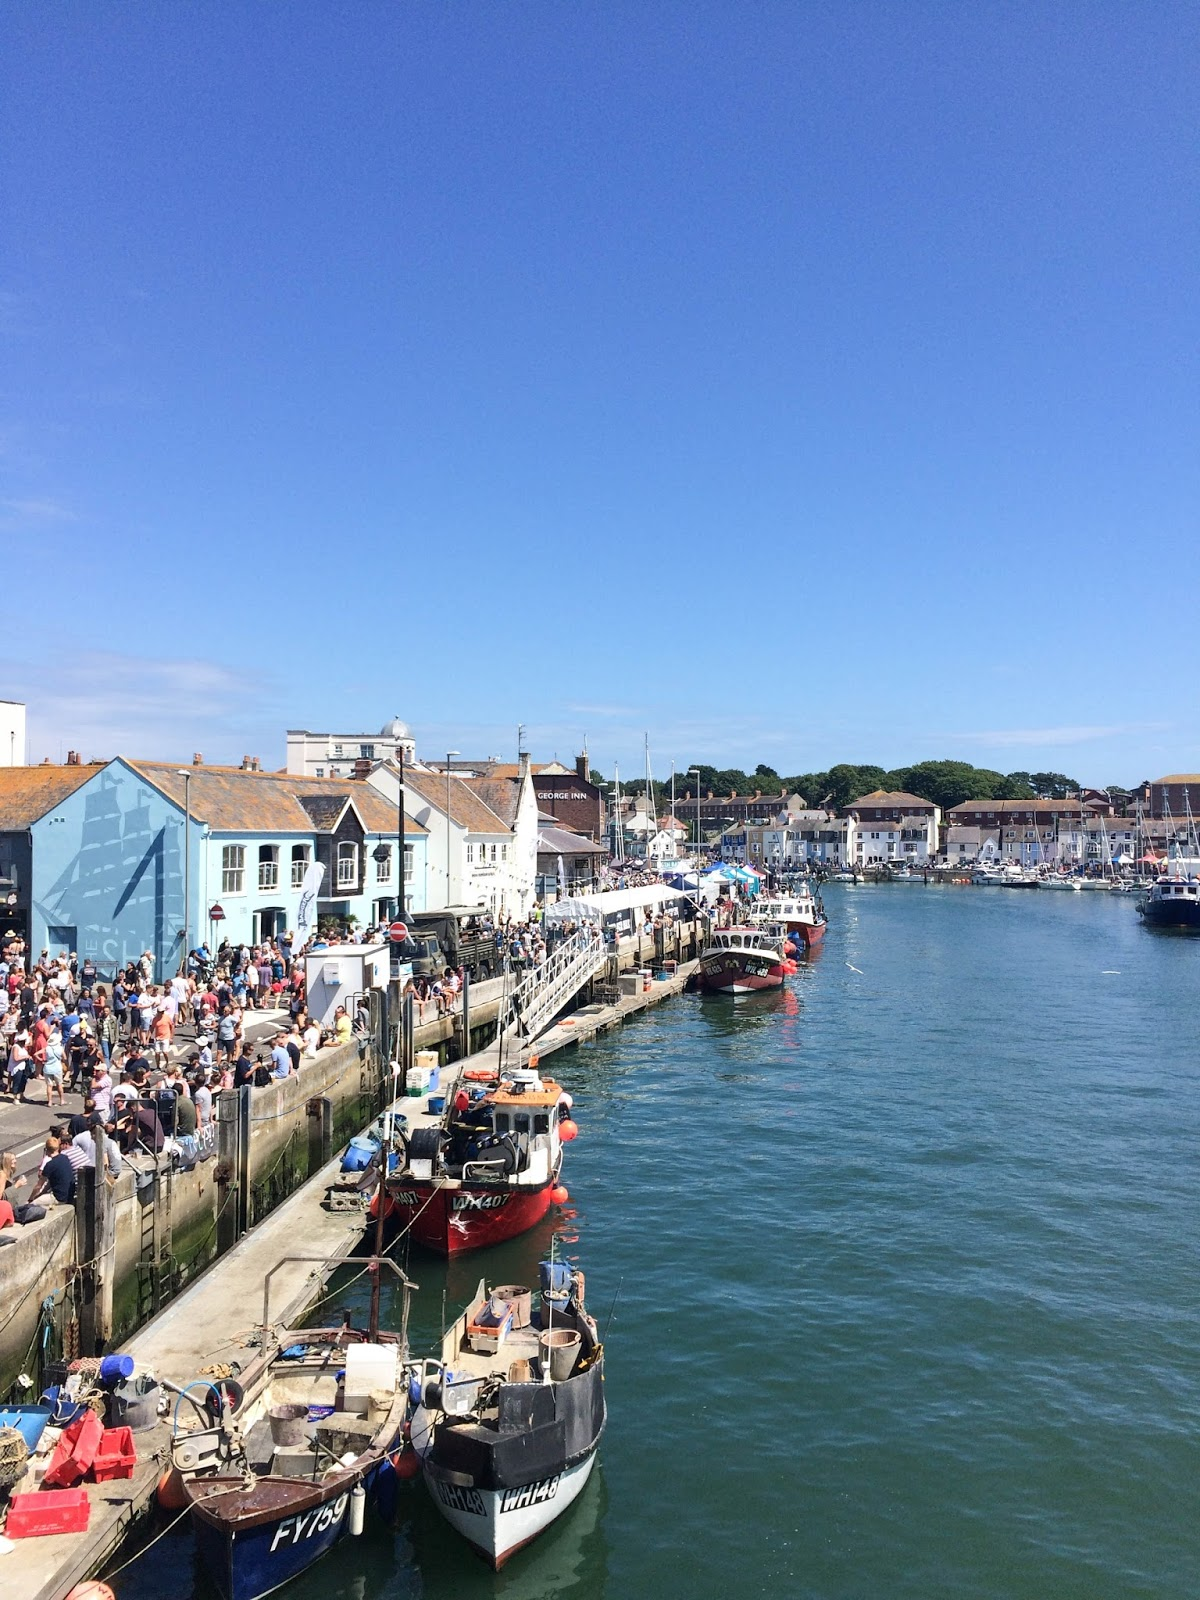 Pommery Dorset Seafood Festival in Weymouth, Weymouth Harbour, street food, food bloggers, lifestyle bloggers